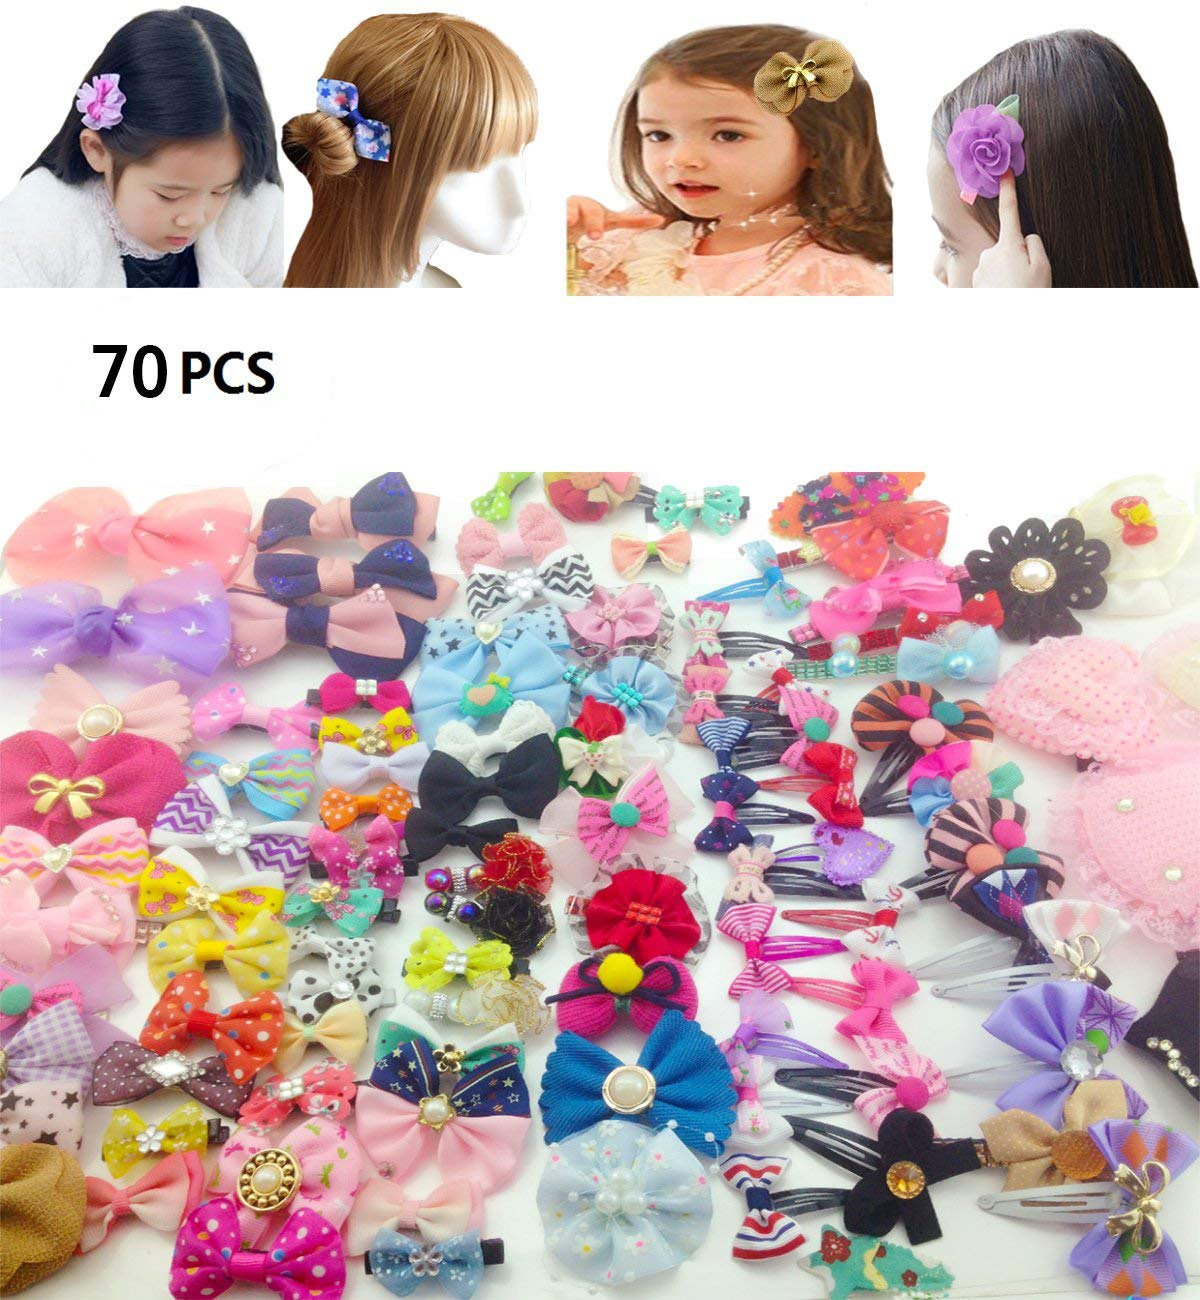 70Pack Sc0nni Hair Clips Barrettes with Bows Designed For Baby, Toddler, and Young Girls-Variety Styles